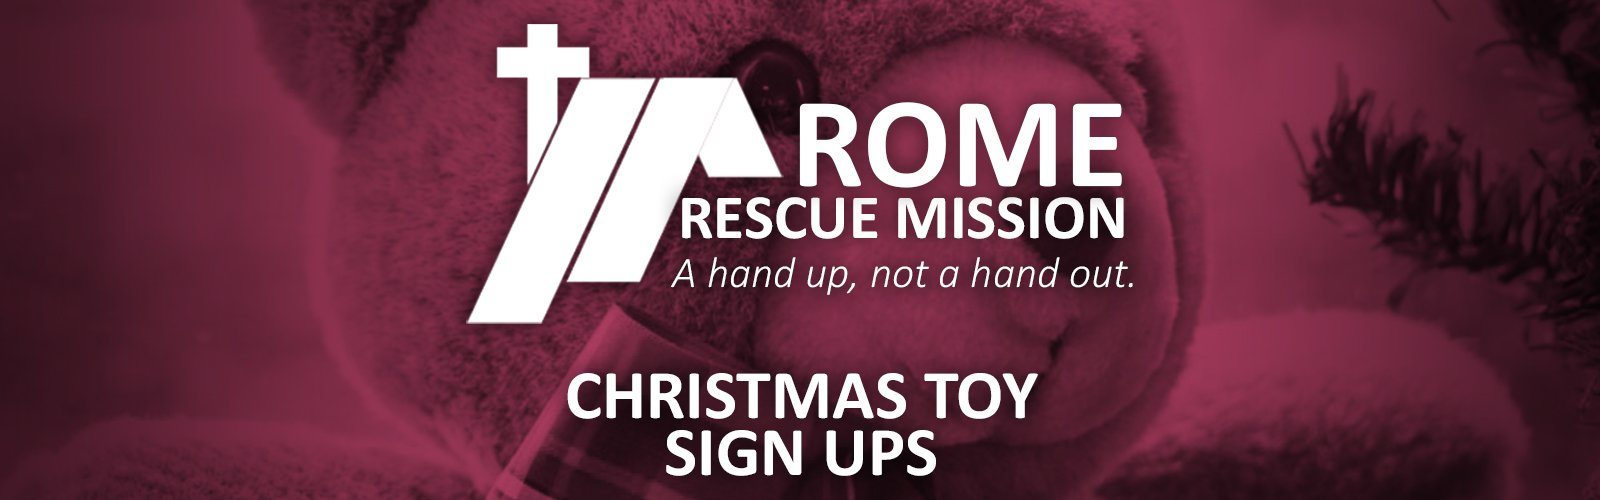 RRM_Christmas-Toy-Sign-Ups-1600×500